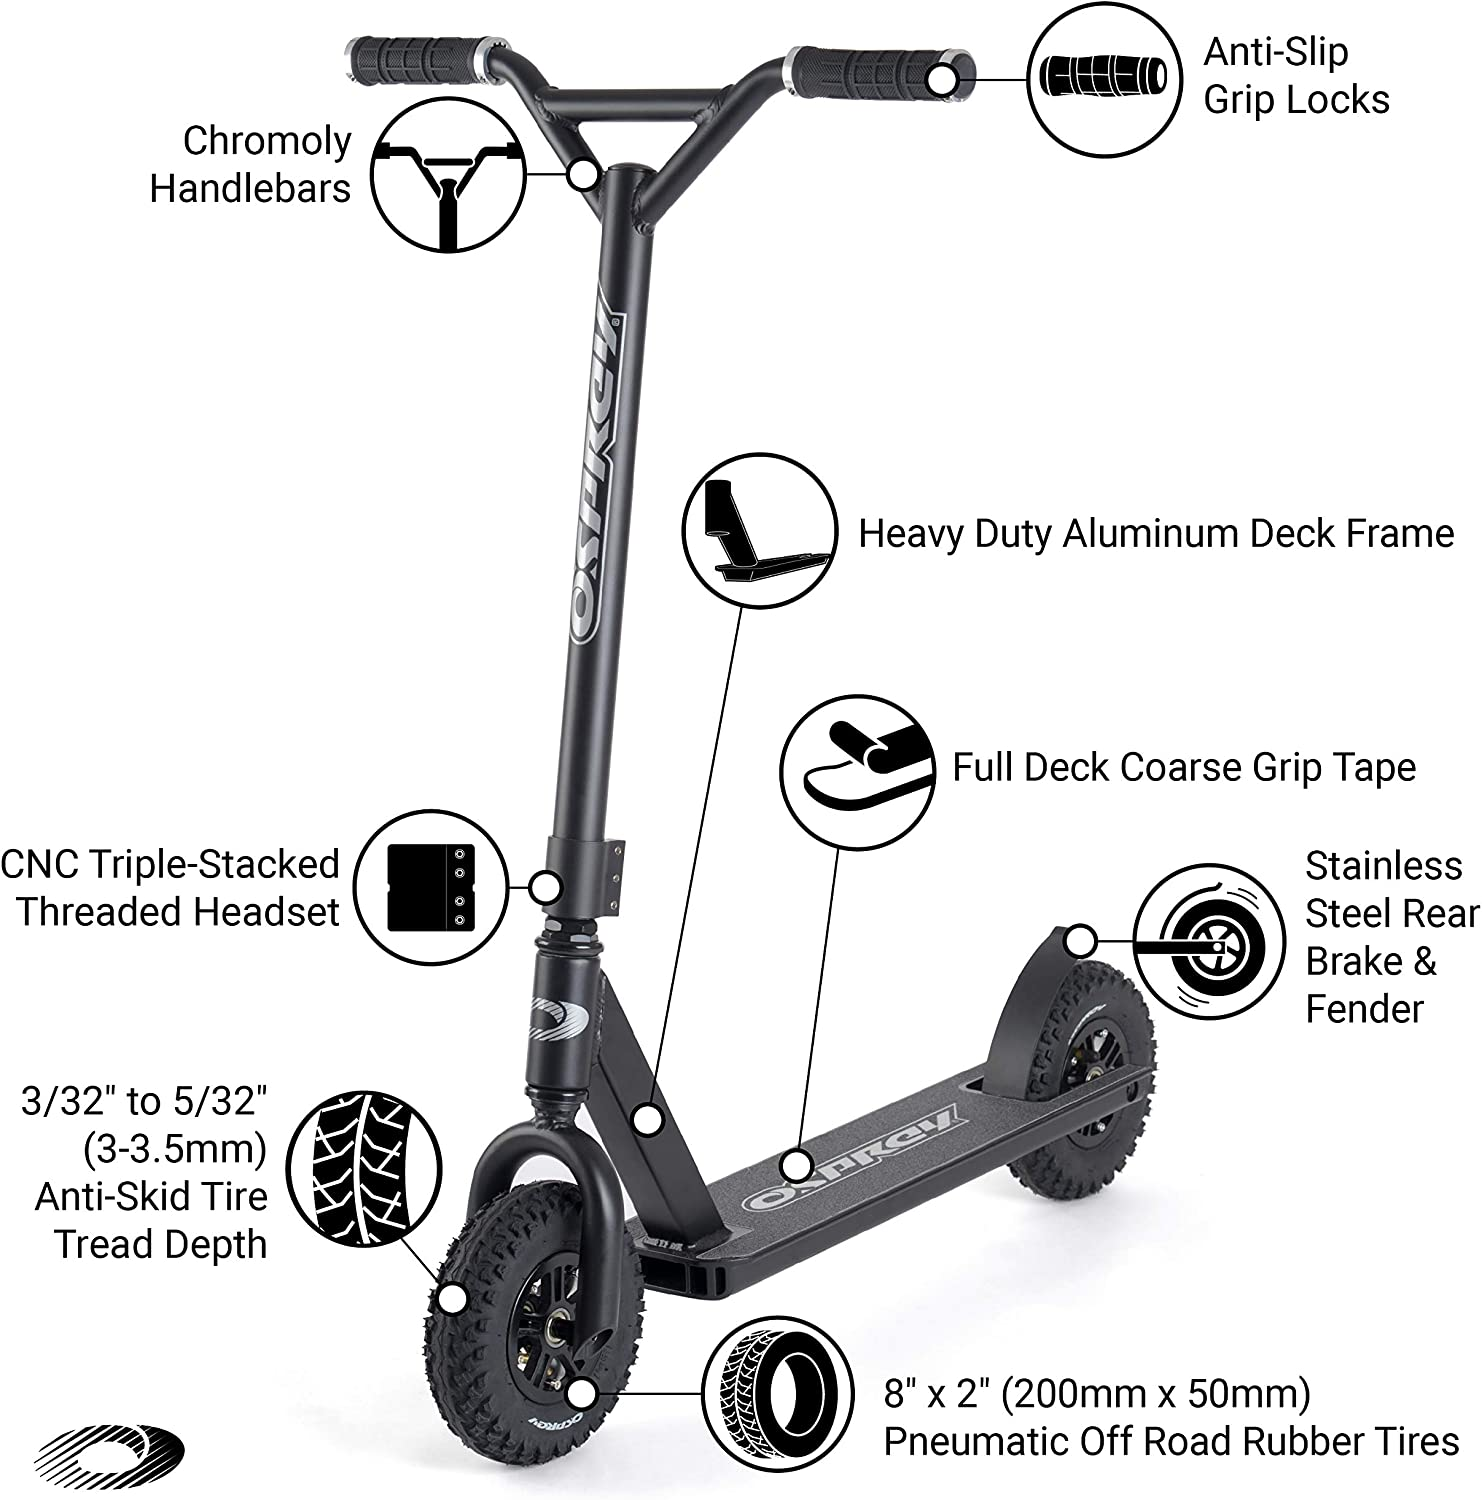 Osprey Dirt Scooter with Off Road All Terrain Pneumatic Trail Tires - 5 Colors Available - Offroad Scooter for Adults or Kids (Black)